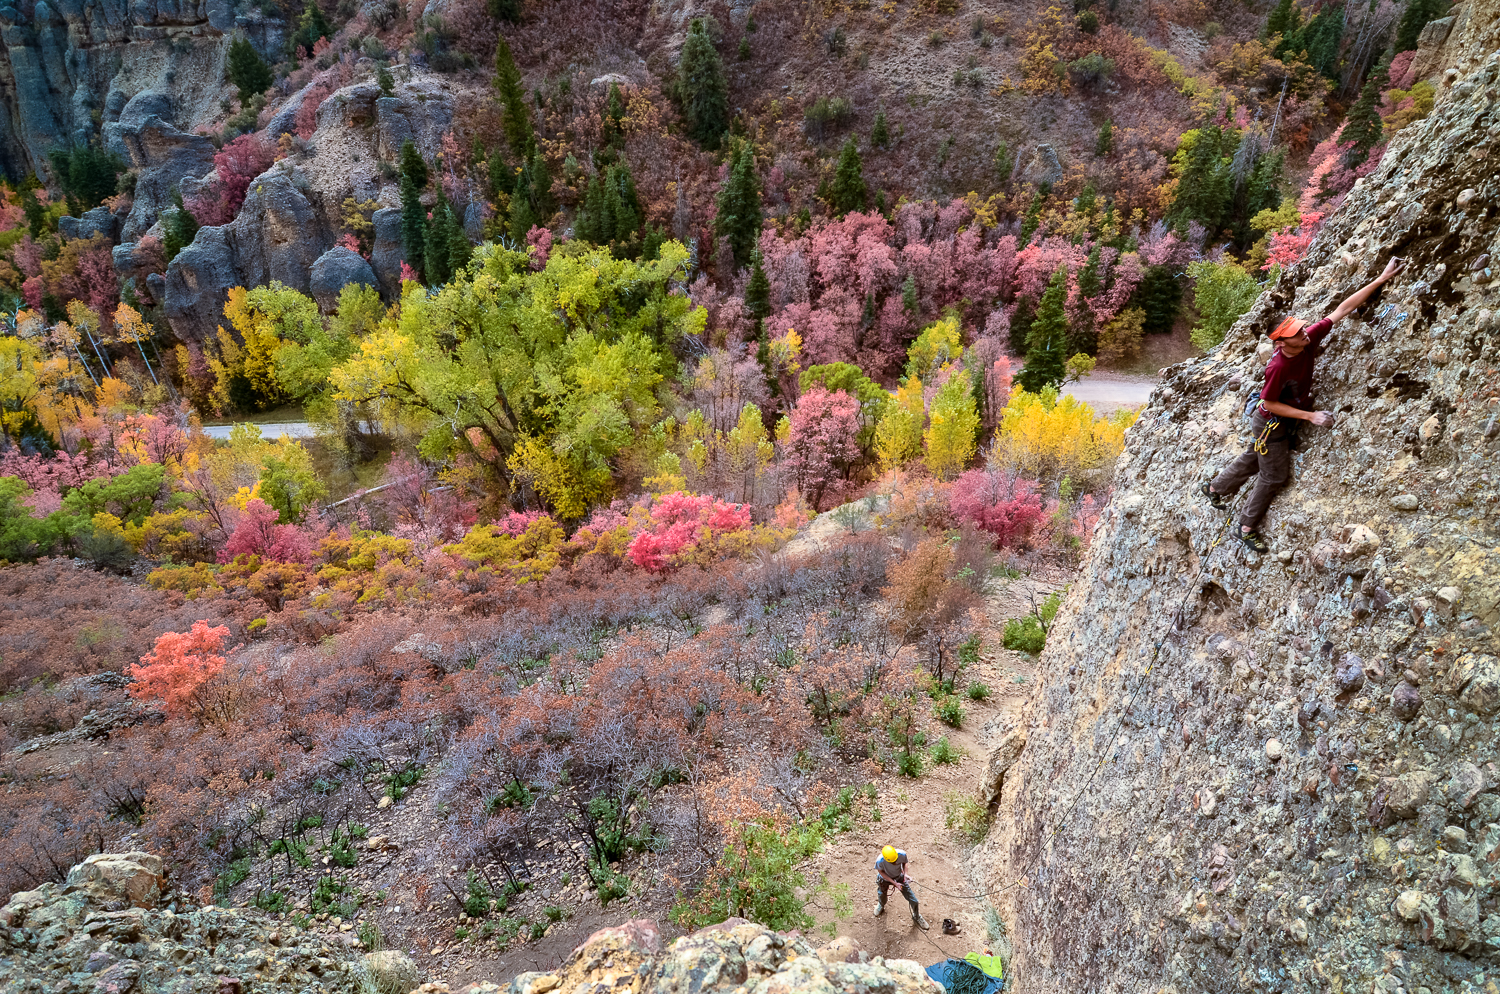 20121010_Maple Canyon climbing_372.jpg